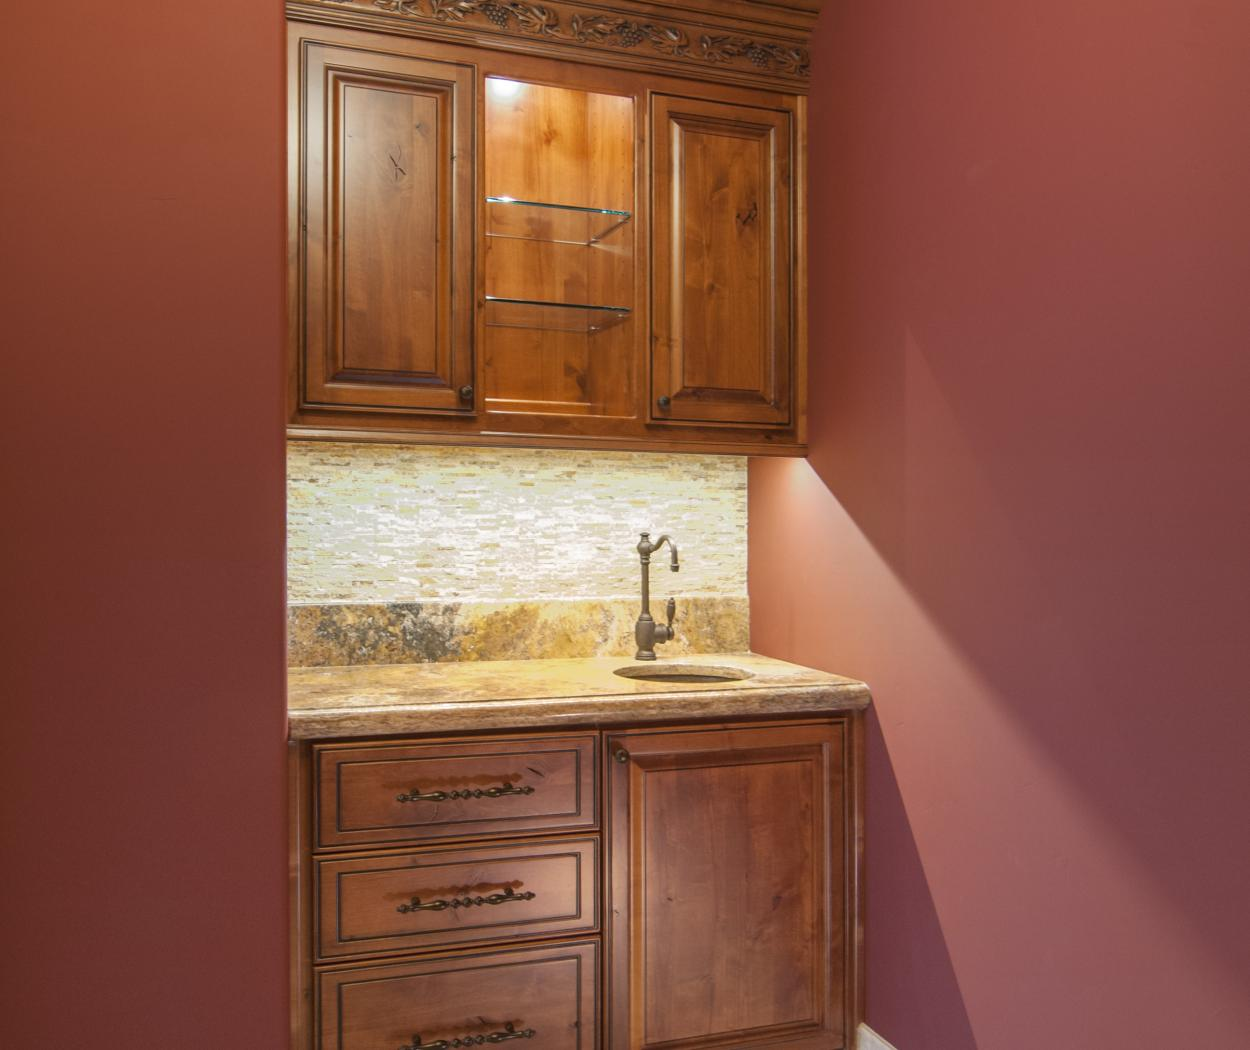 Traditional Knotty Alder Built-In with a Beautiful Oil Rubbed Bronze Faucet, Granite Counter Top and Glass Shelves